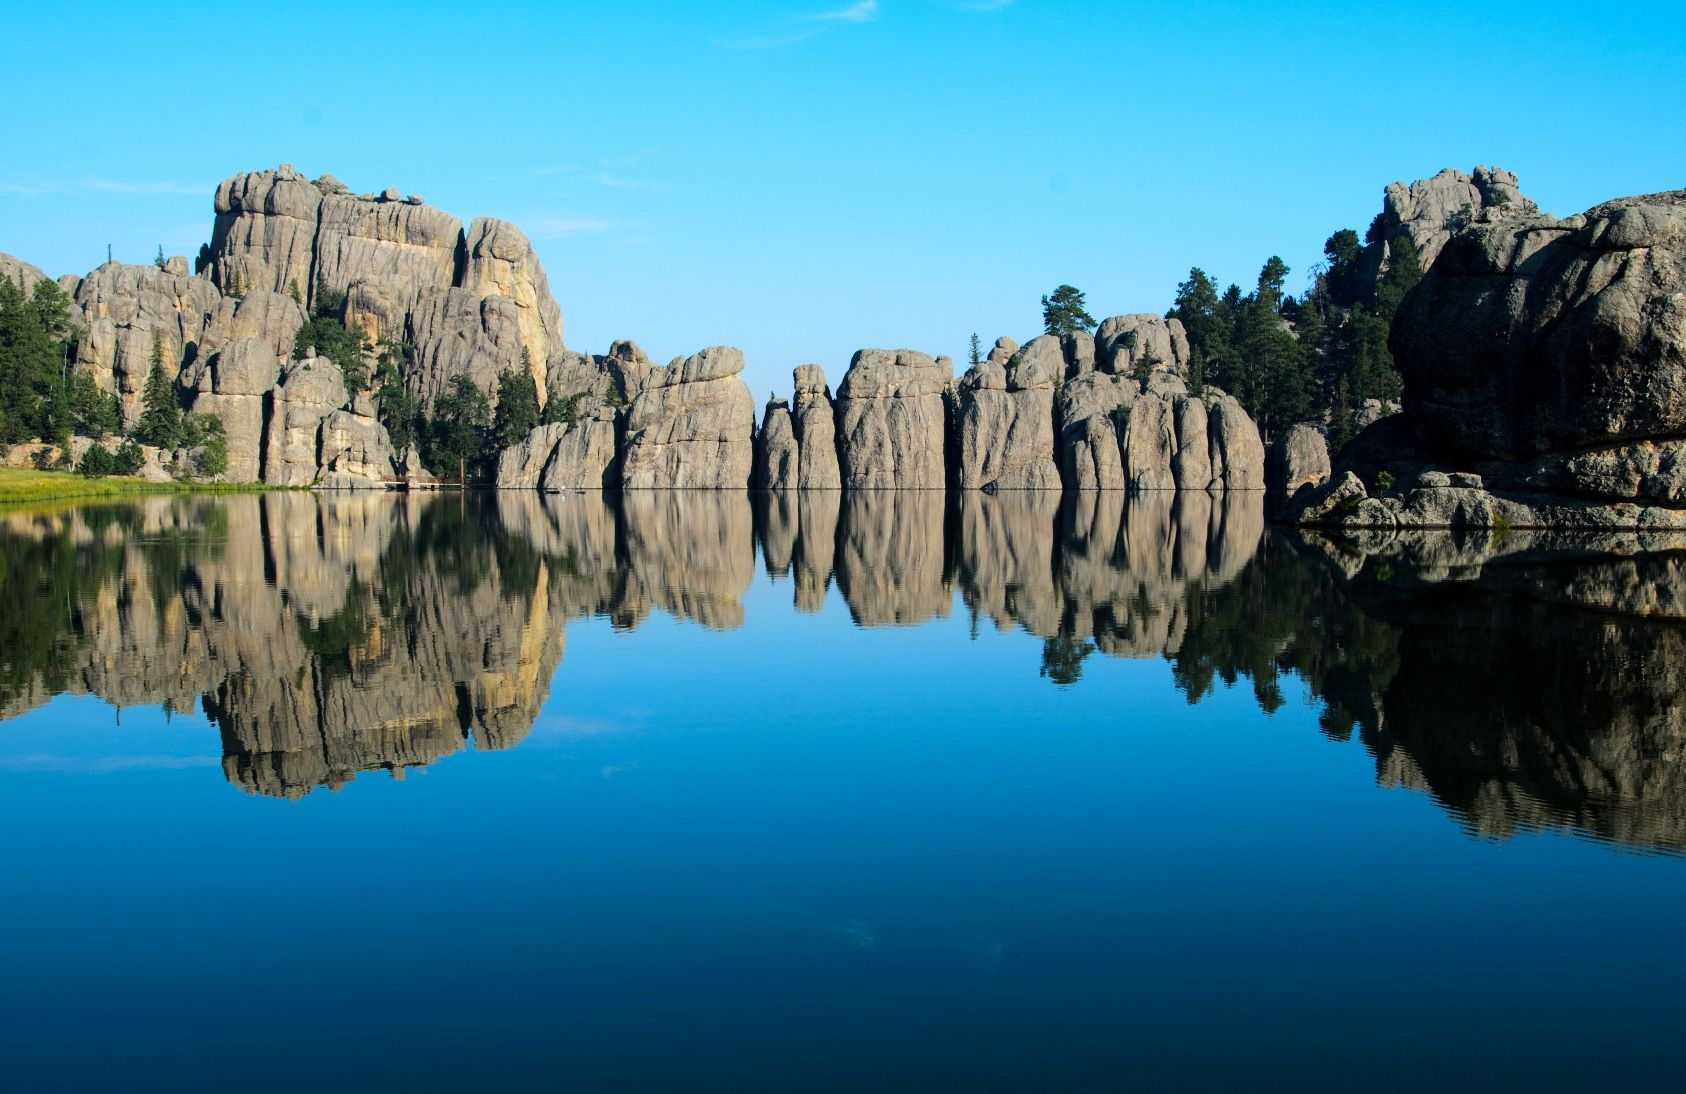 sylvan lake in custer state park sd we drove by this lake on our